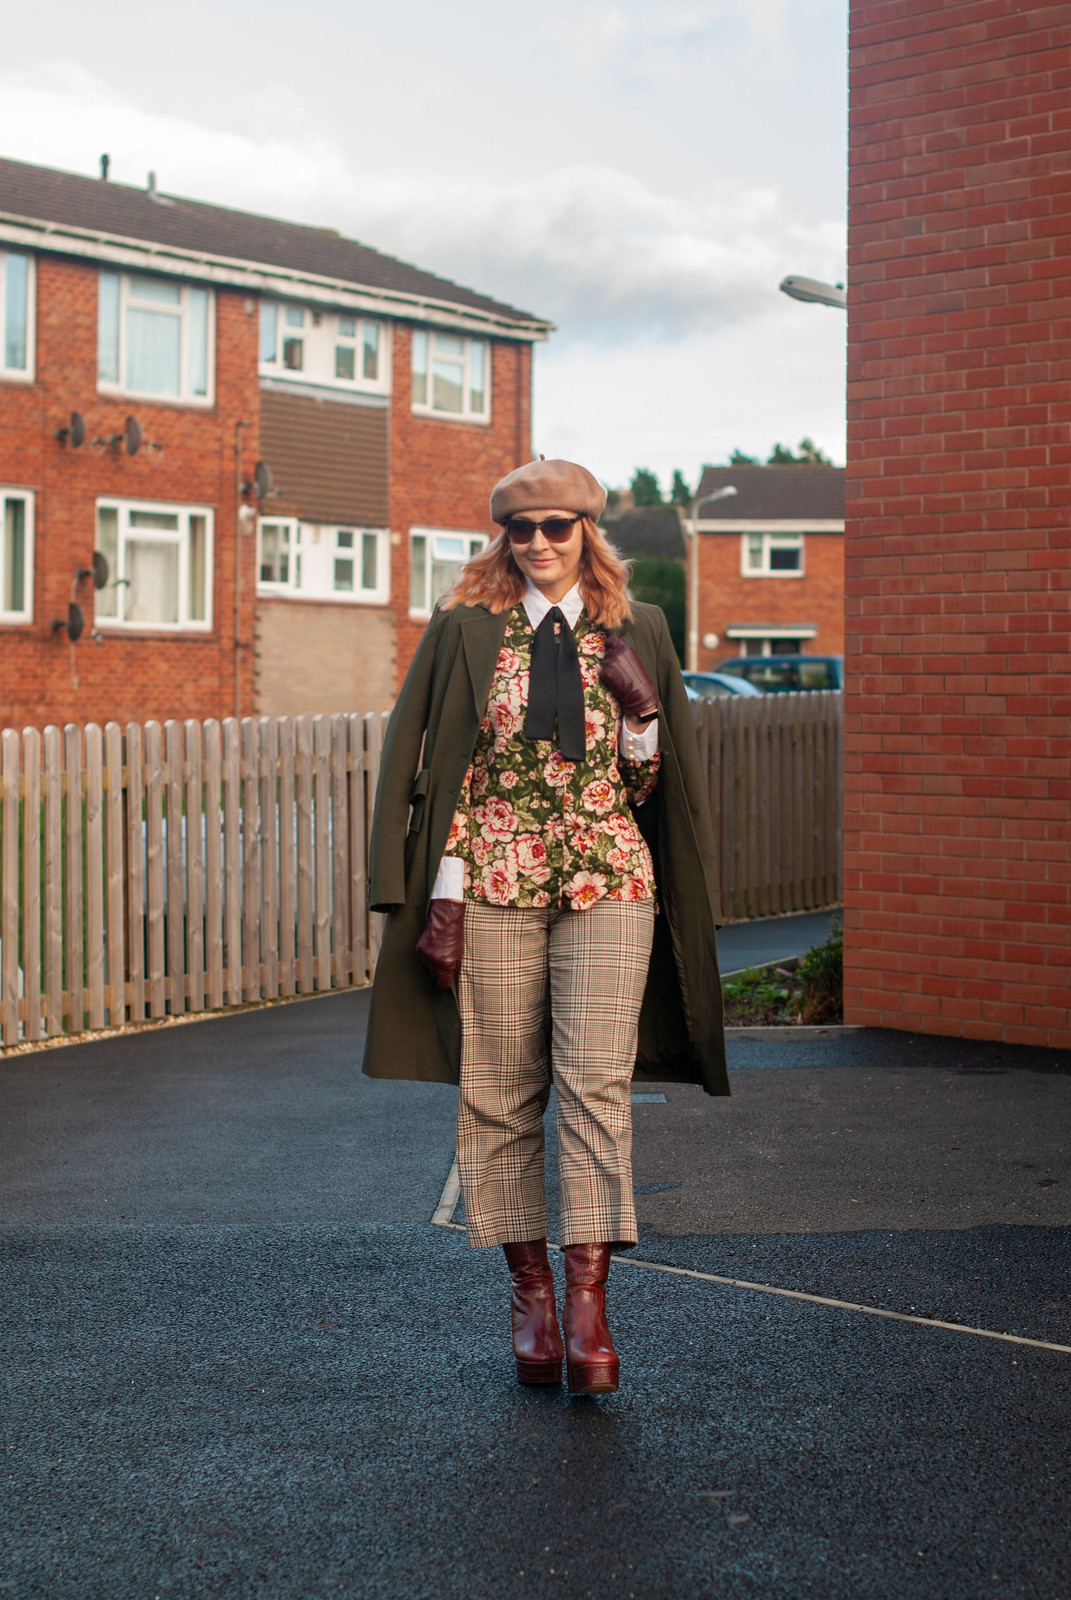 Eclectic Style: Mixed Patterns and Platform Boots | Not Dressed As Lamb, Fashion and Style for Over 40 Women